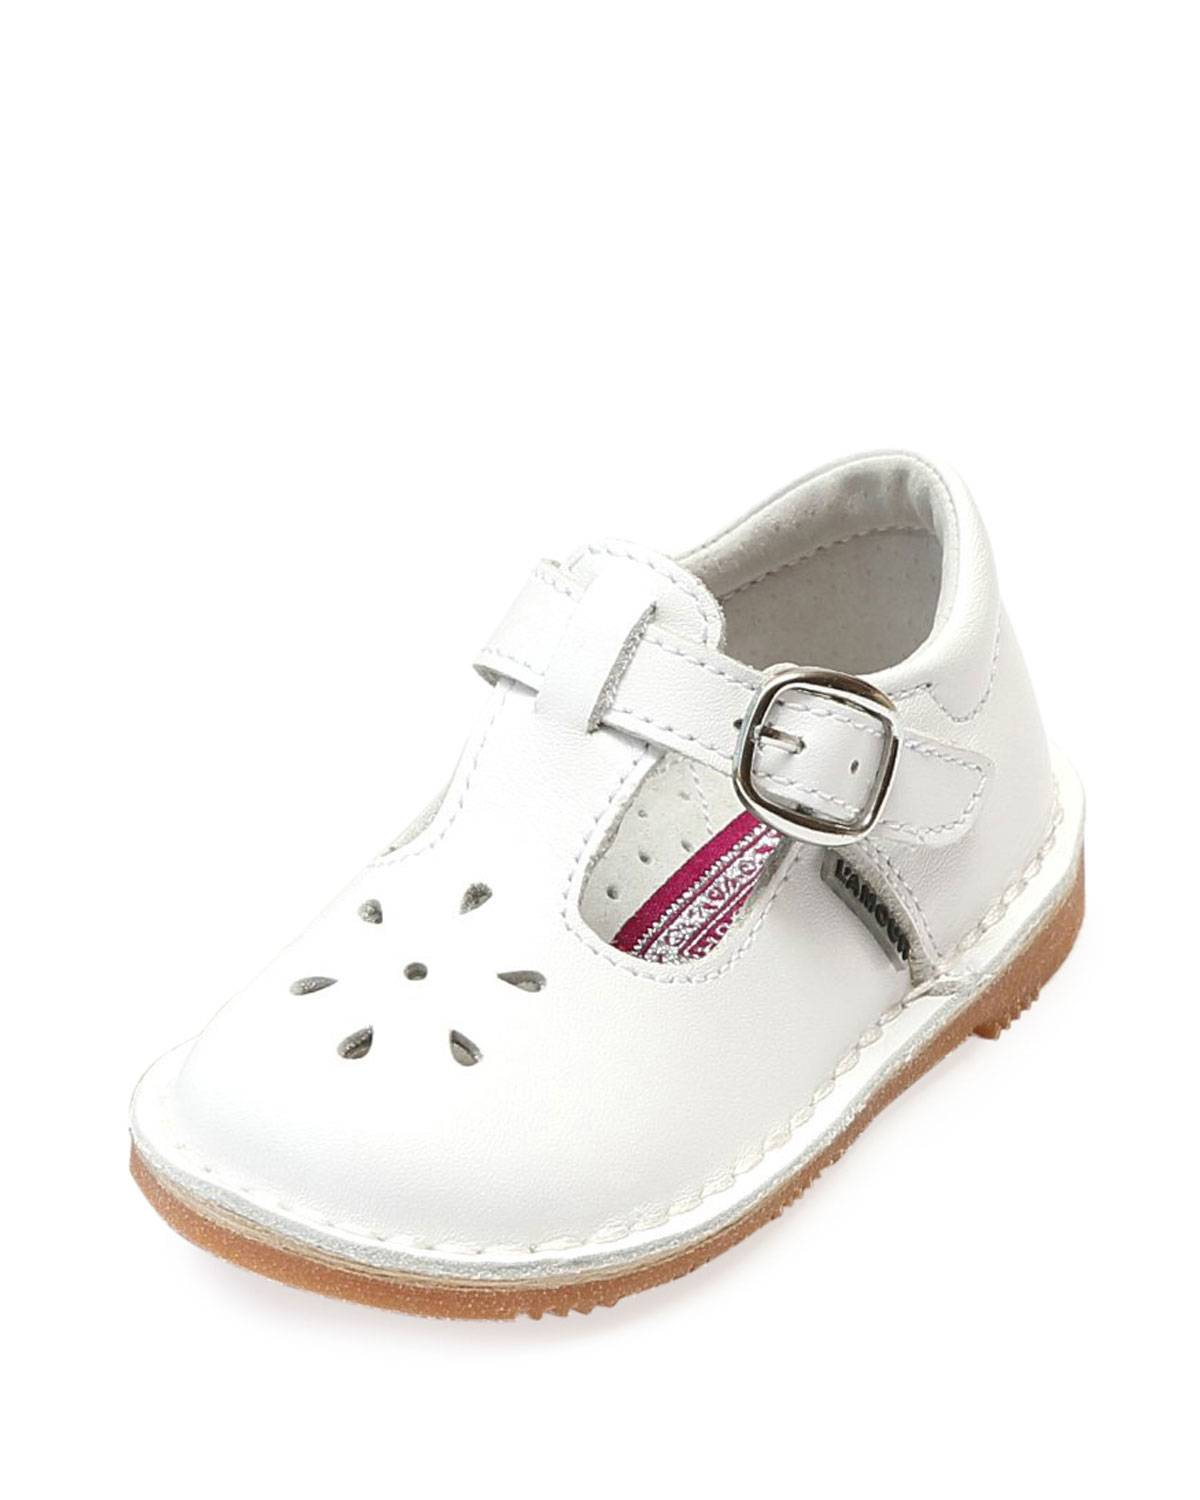 L'Amour Shoes Joy Leather Cutout T-Strap Mary Jane, Baby/Toddler/Kids - Size: 10 Tod